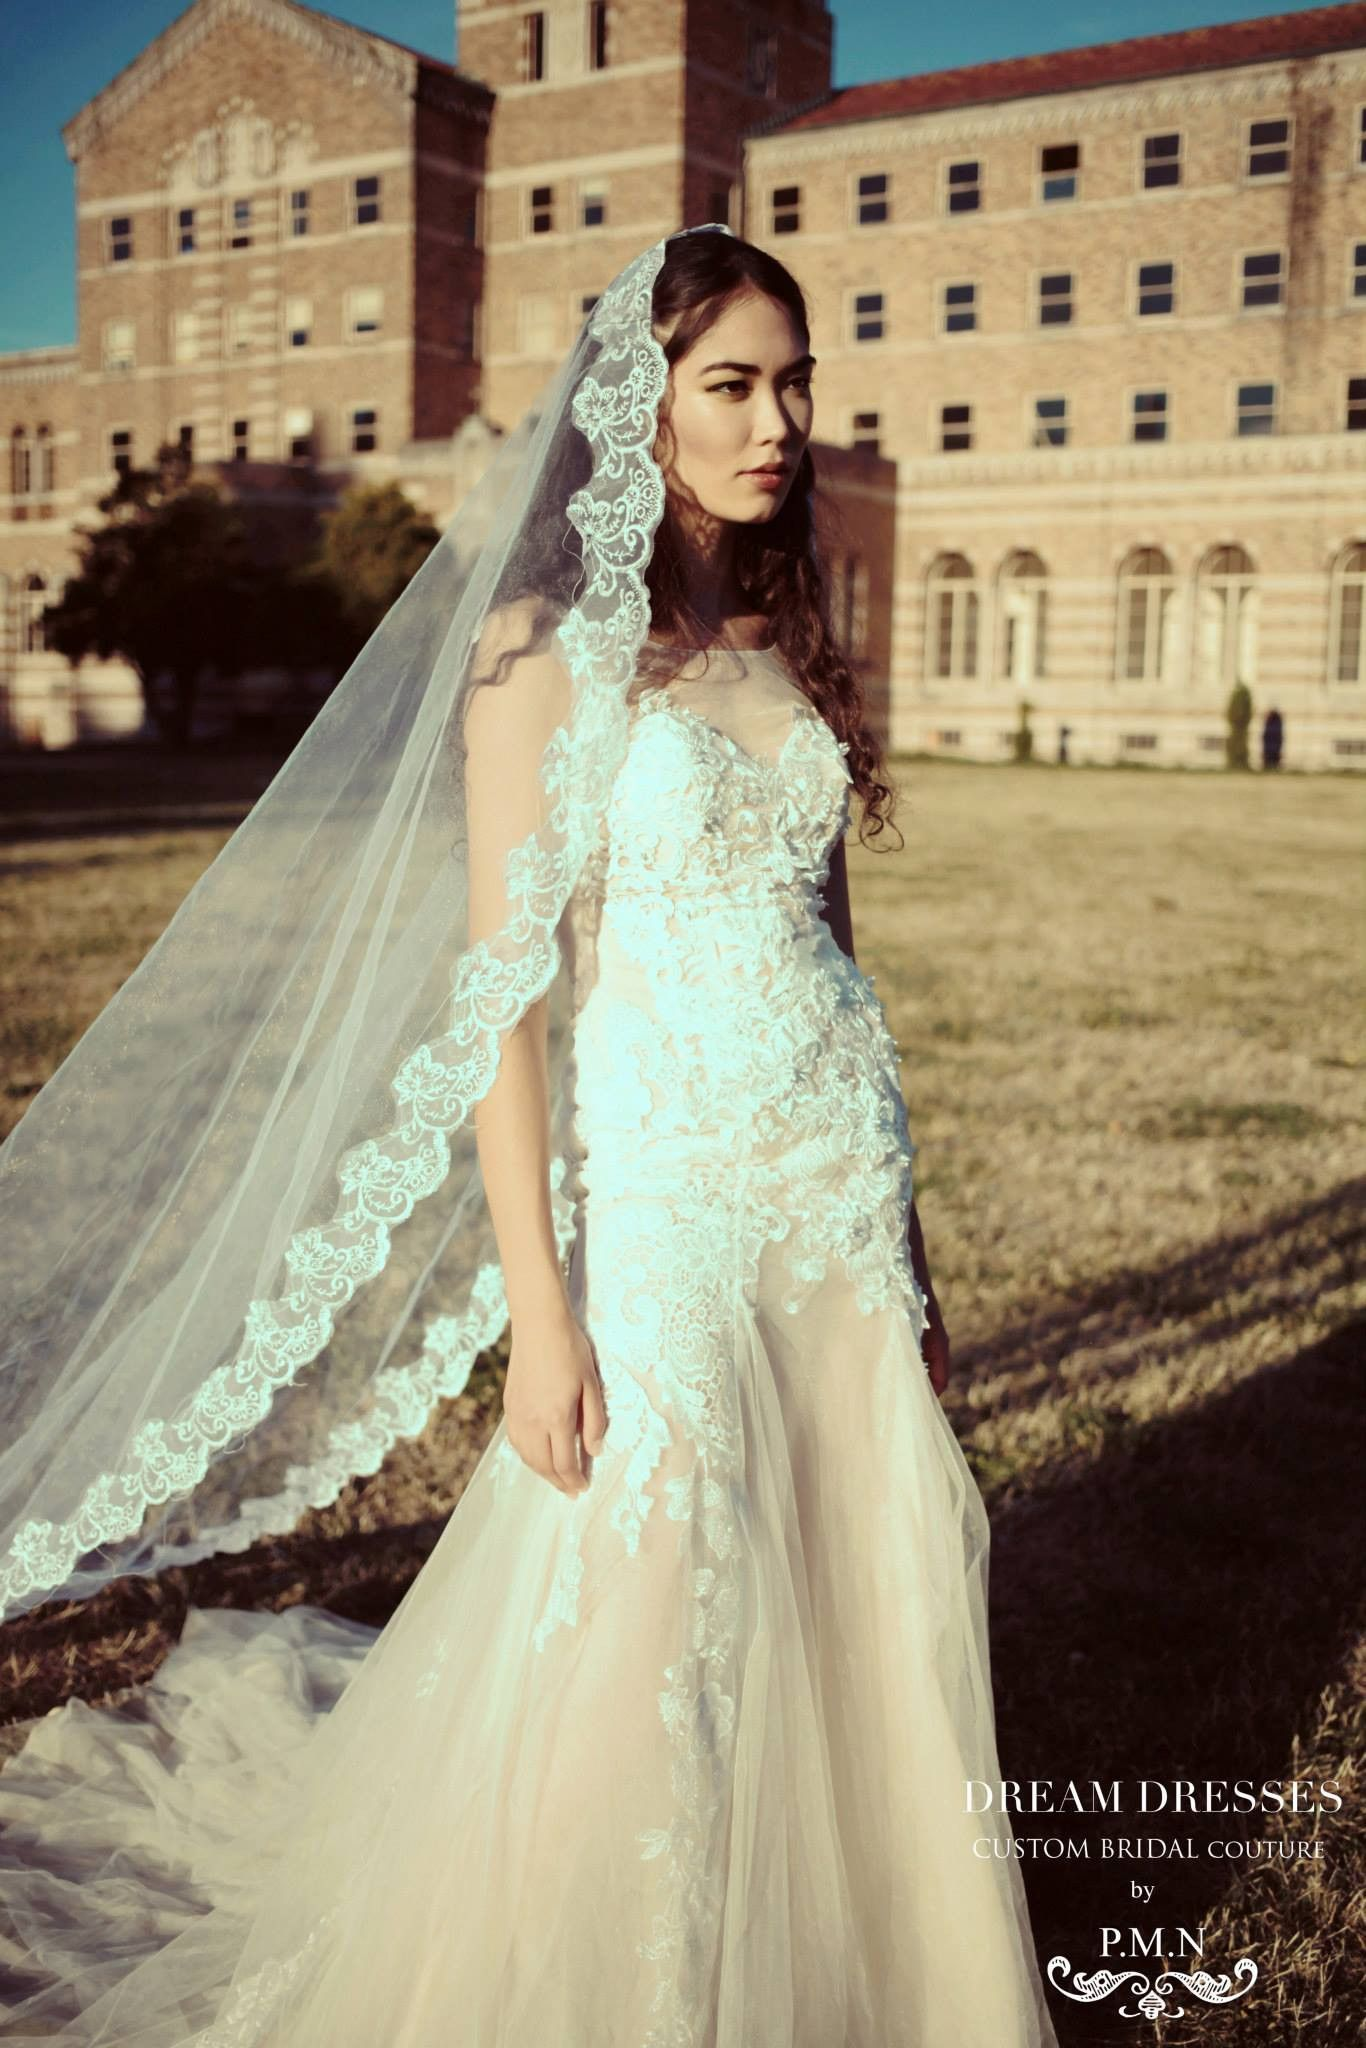 Cathedral Lace Wedding Veil (SS16306) Lace weddings